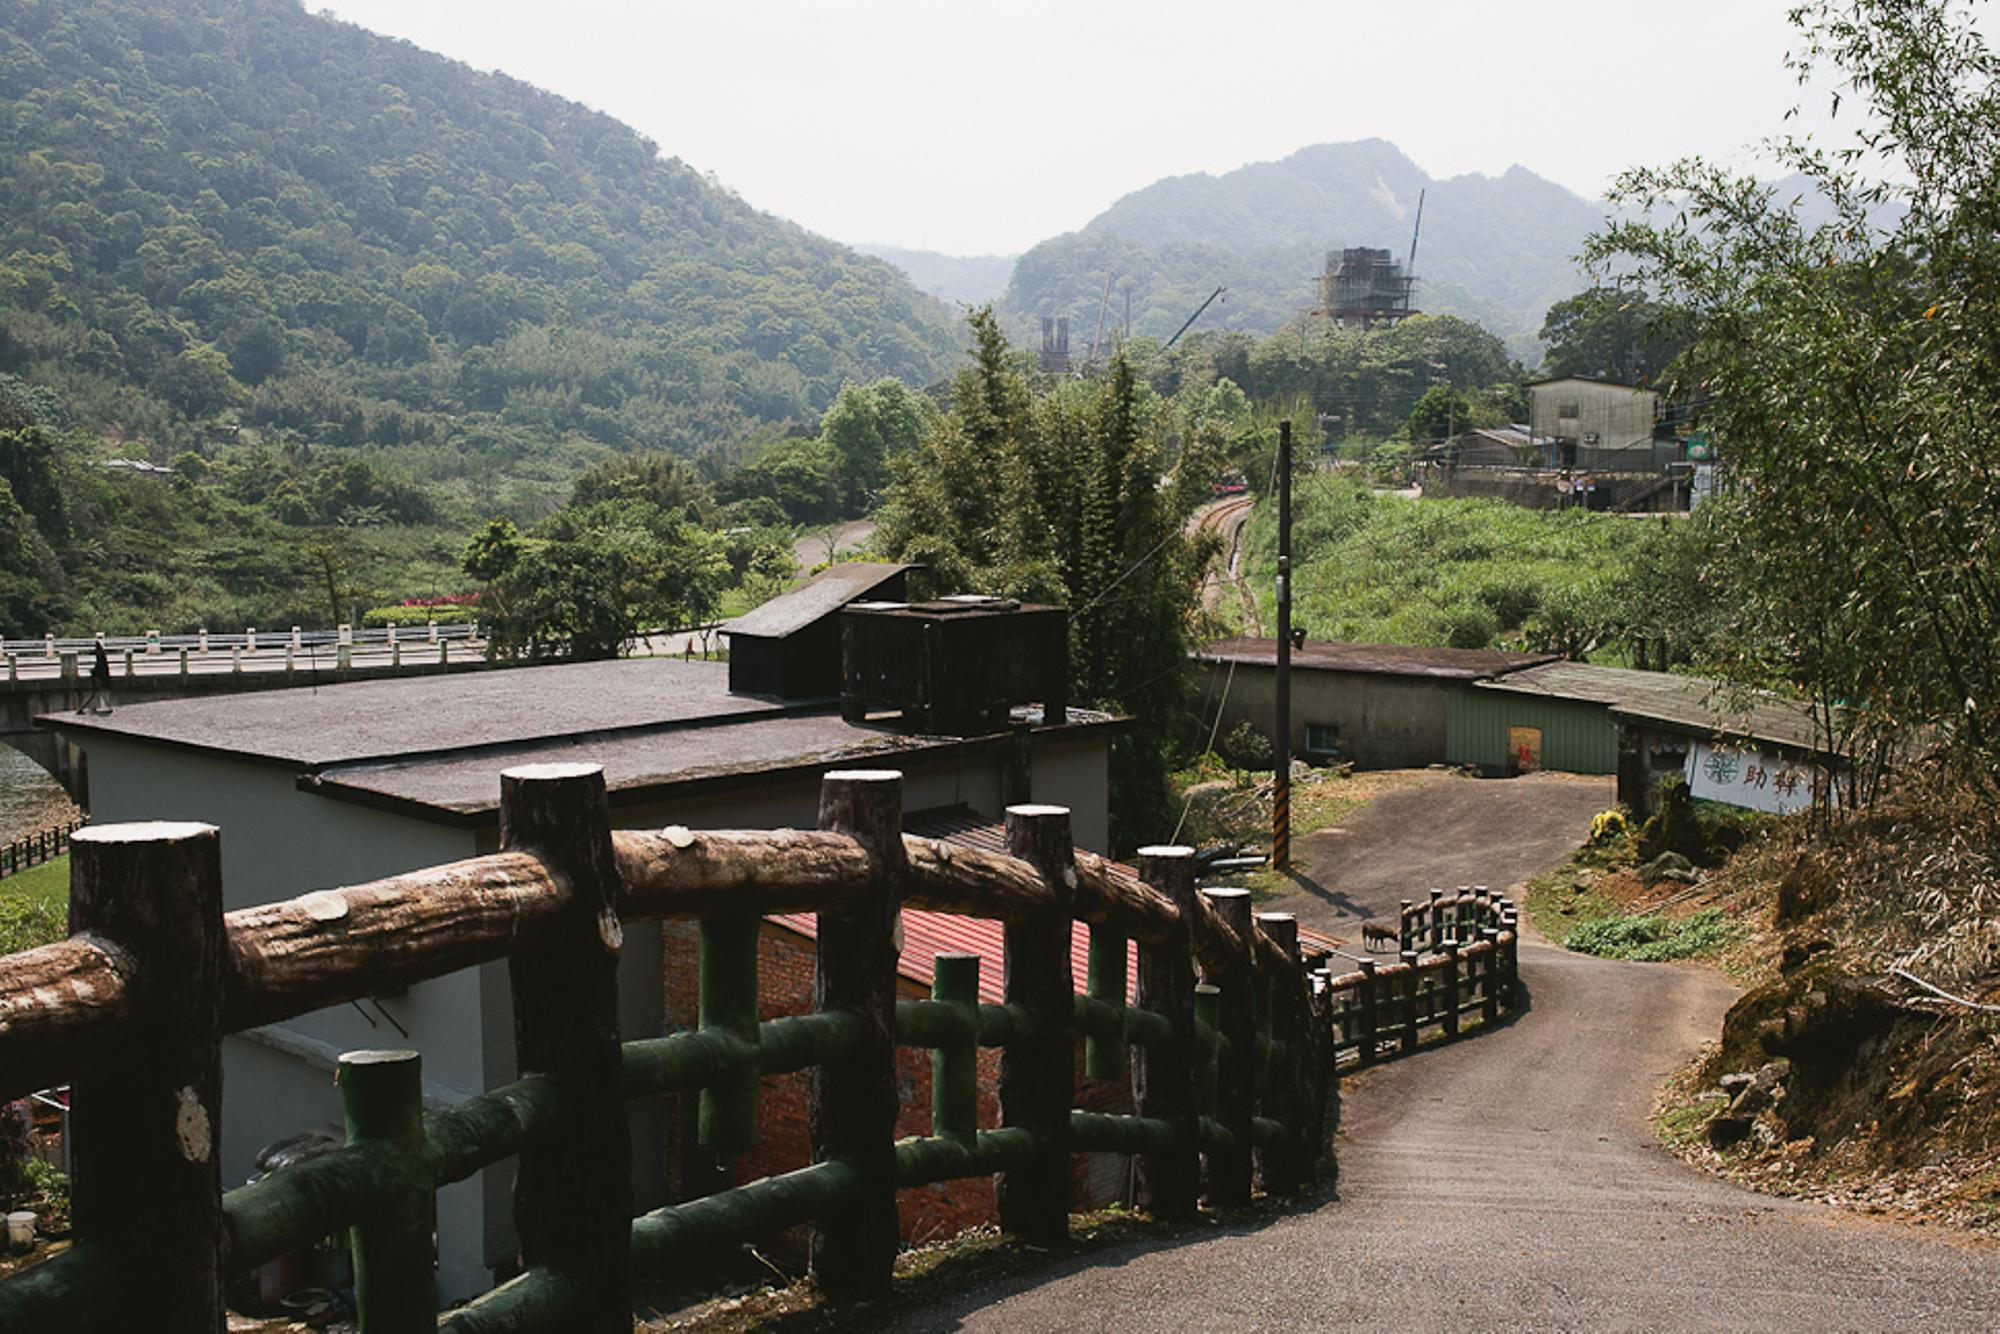 Minerals and even gold were mined here by the Japanese during WWII.